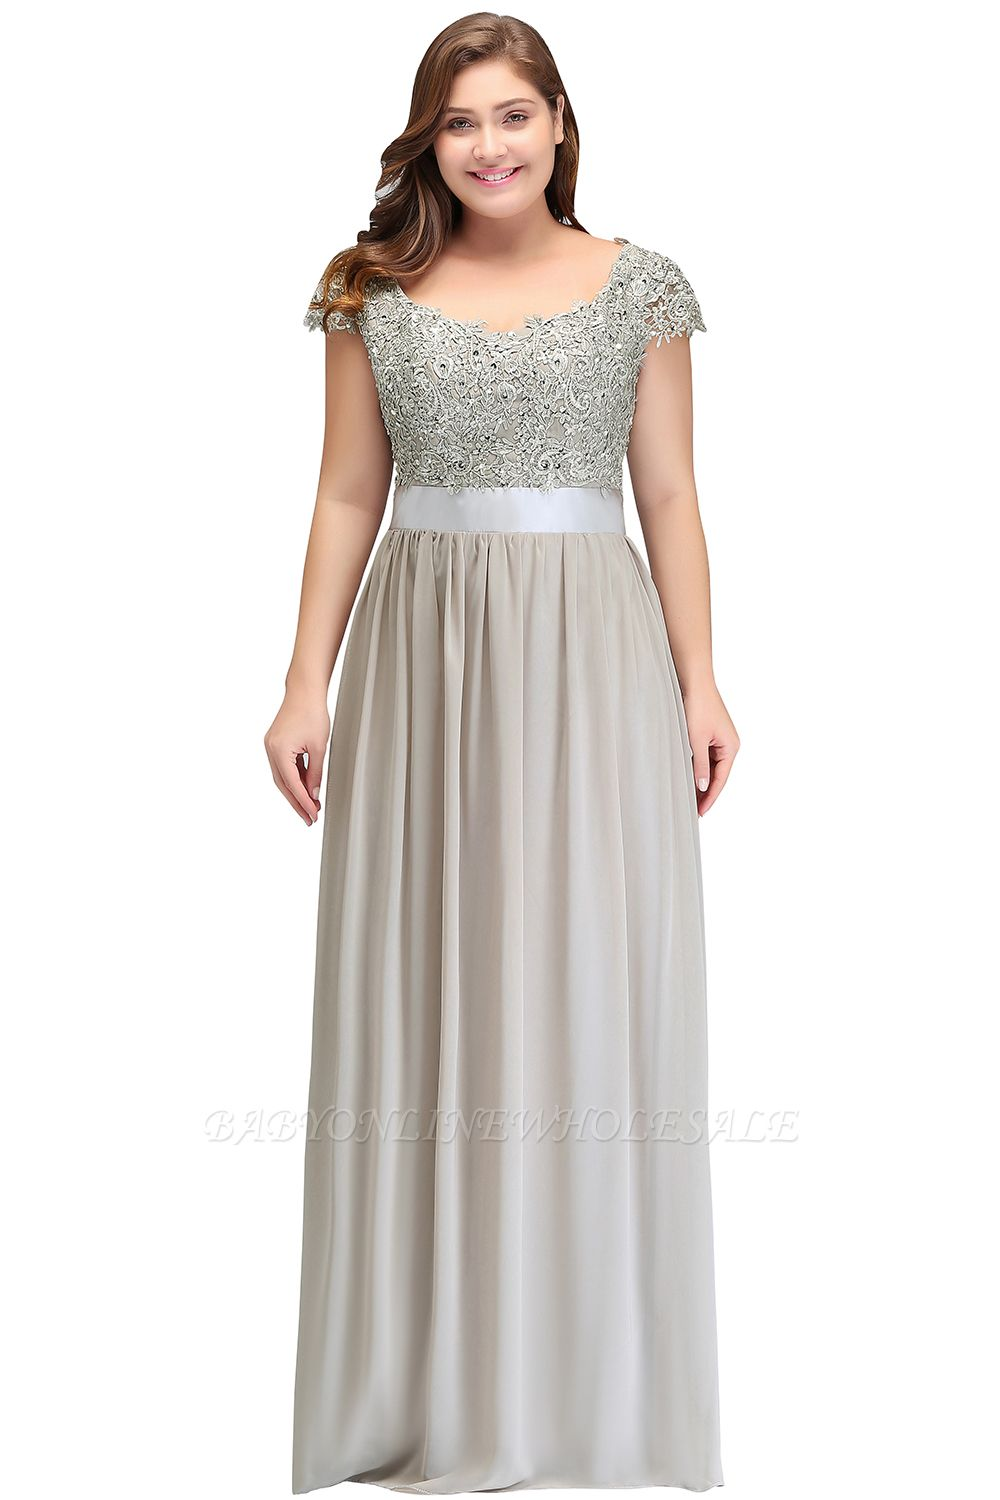 HOLLAND   A-Line Scoop Floor Length Cap Sleeves Appliques Silver Evening Dresses with Sash